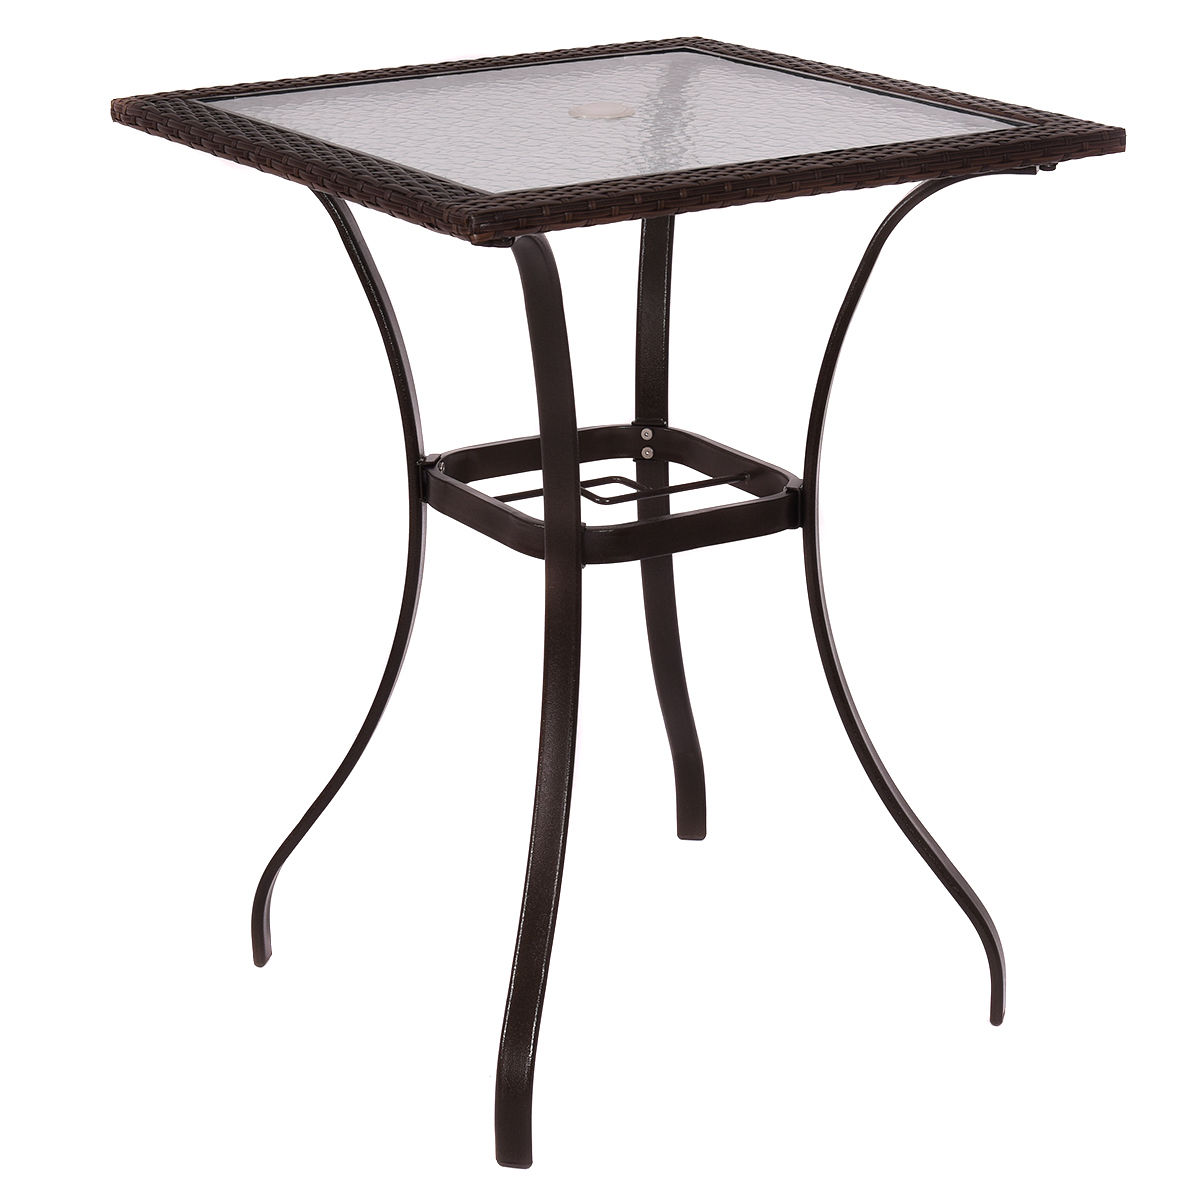 GHP Brown Square Glass Top Contemporary Style Garden Patio Rattan Wicker Bar Table